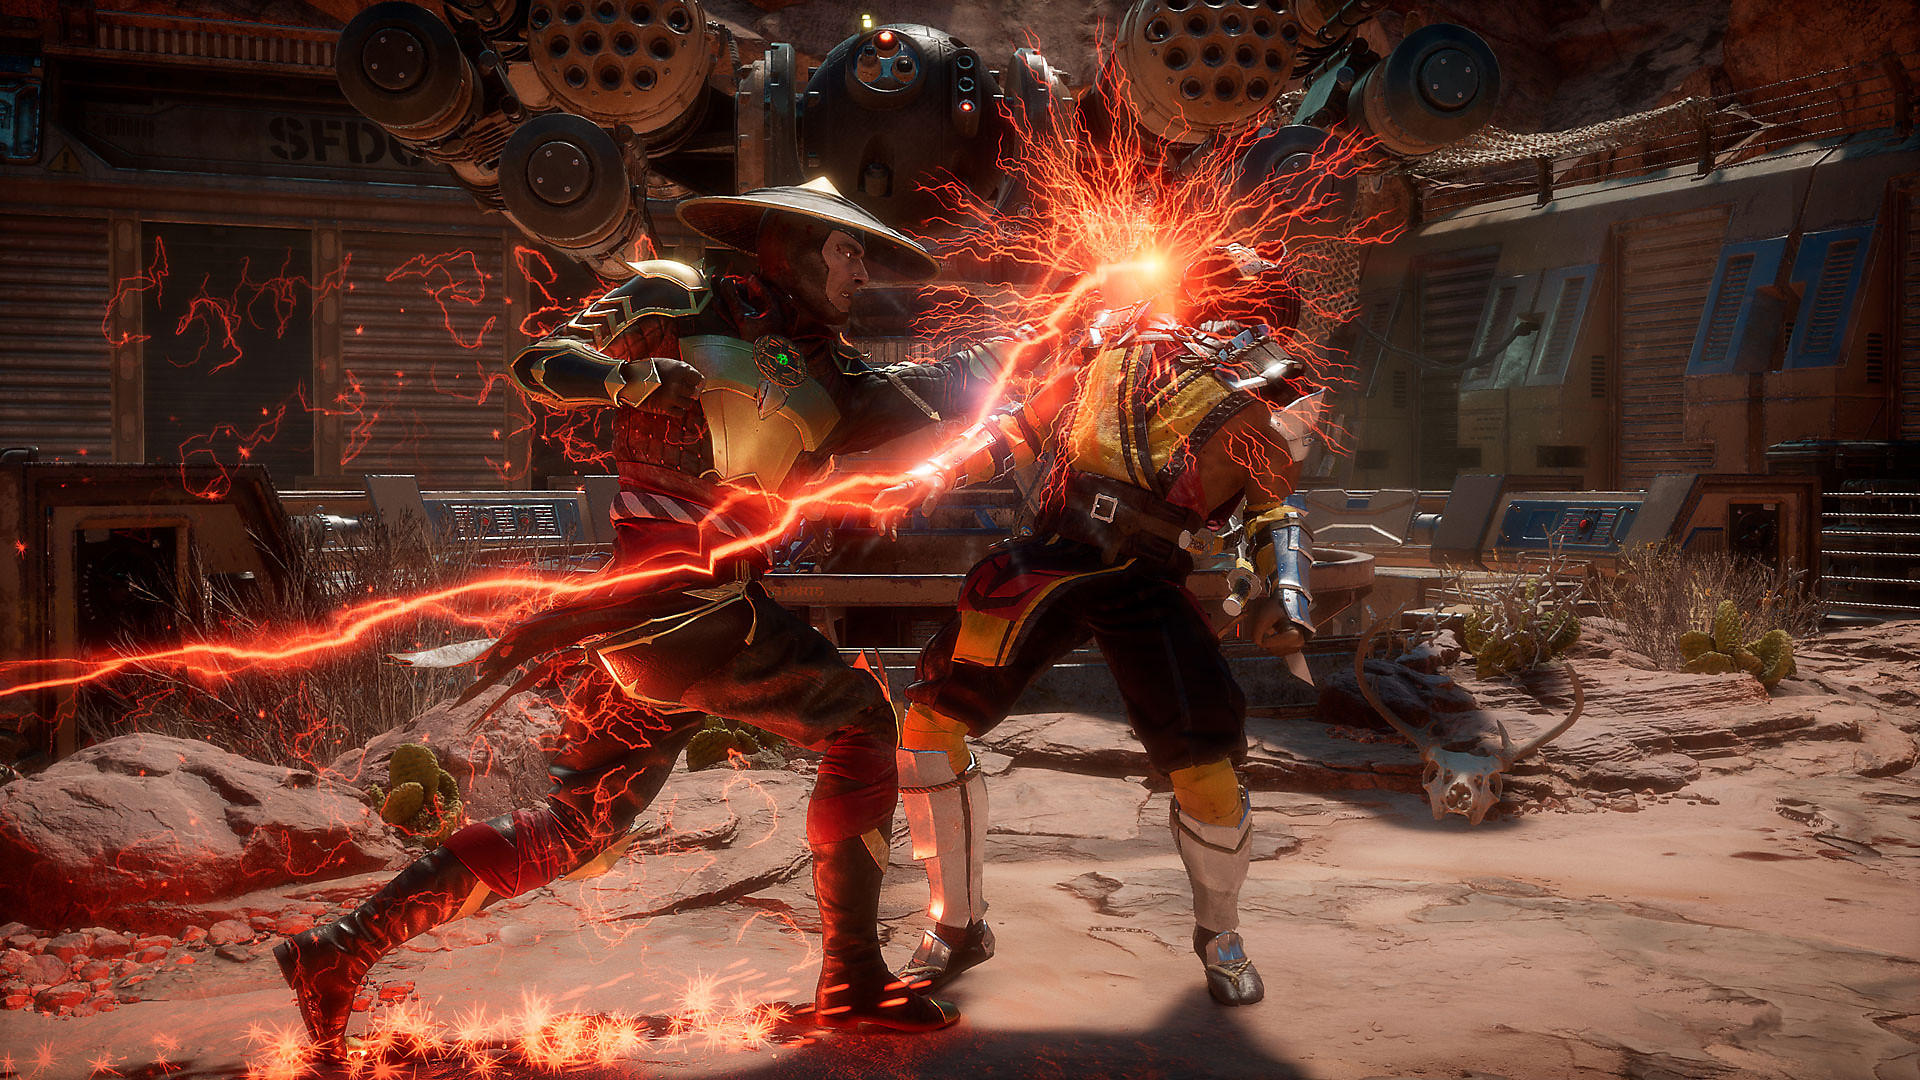 Celebrate The Holidays The Mortal Kombat Way With Two Bloody, Festive Towers Of Time Events